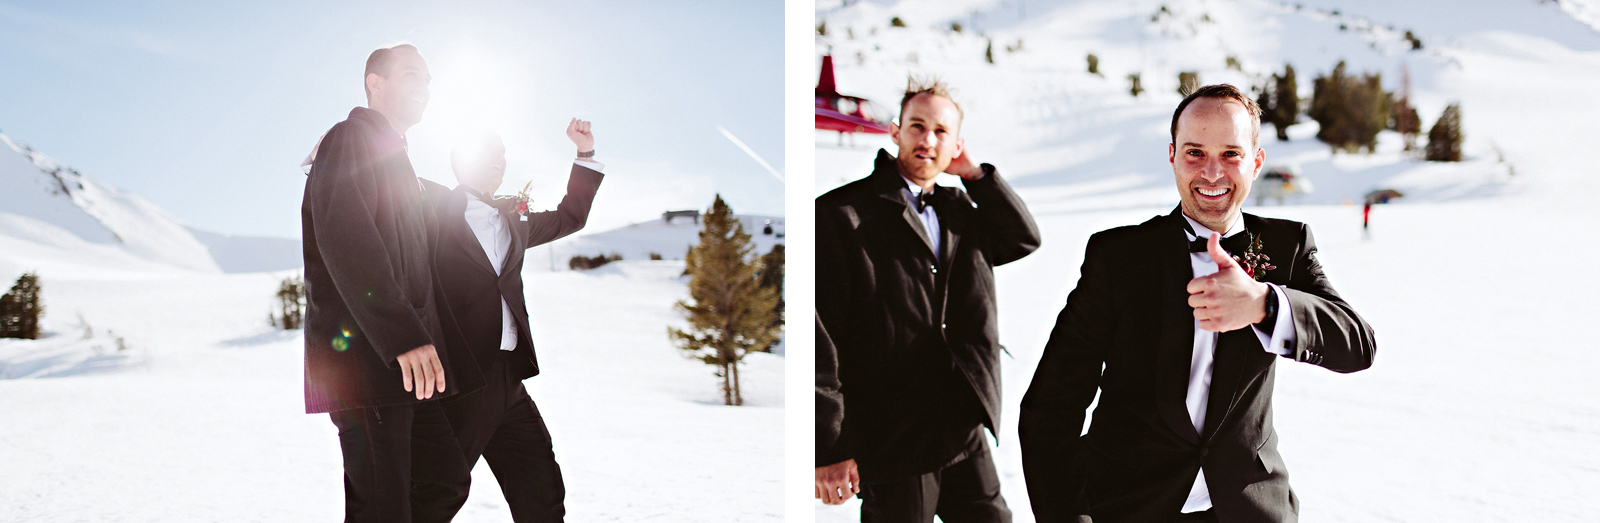 sarahjohn-052 MAMMOTH MOUNTAIN WEDDING